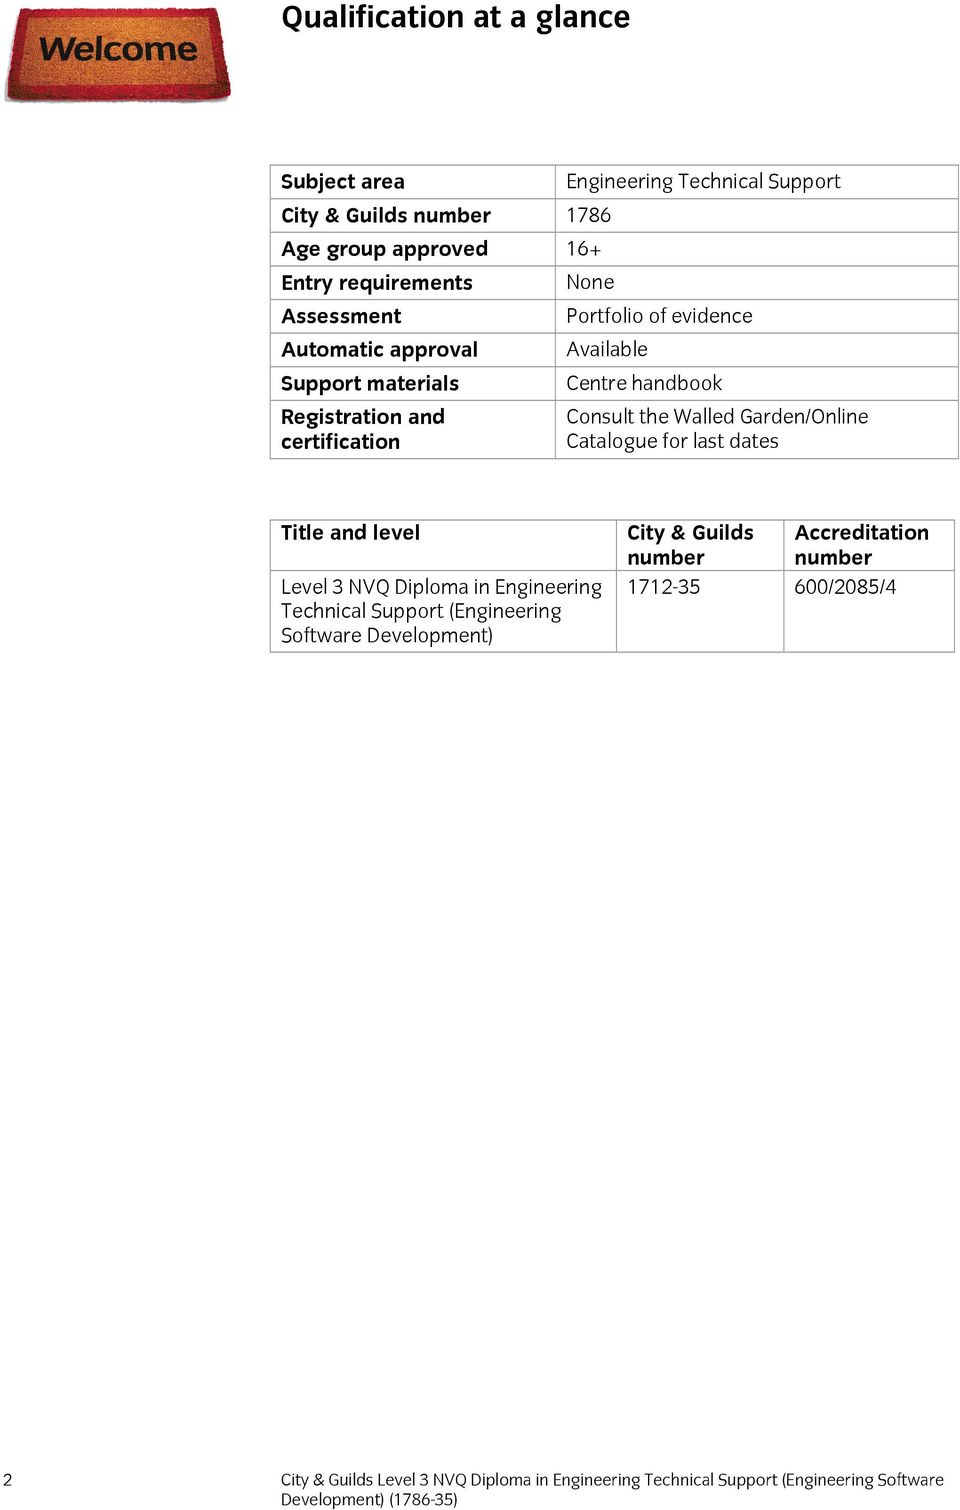 Classification & Qualifications